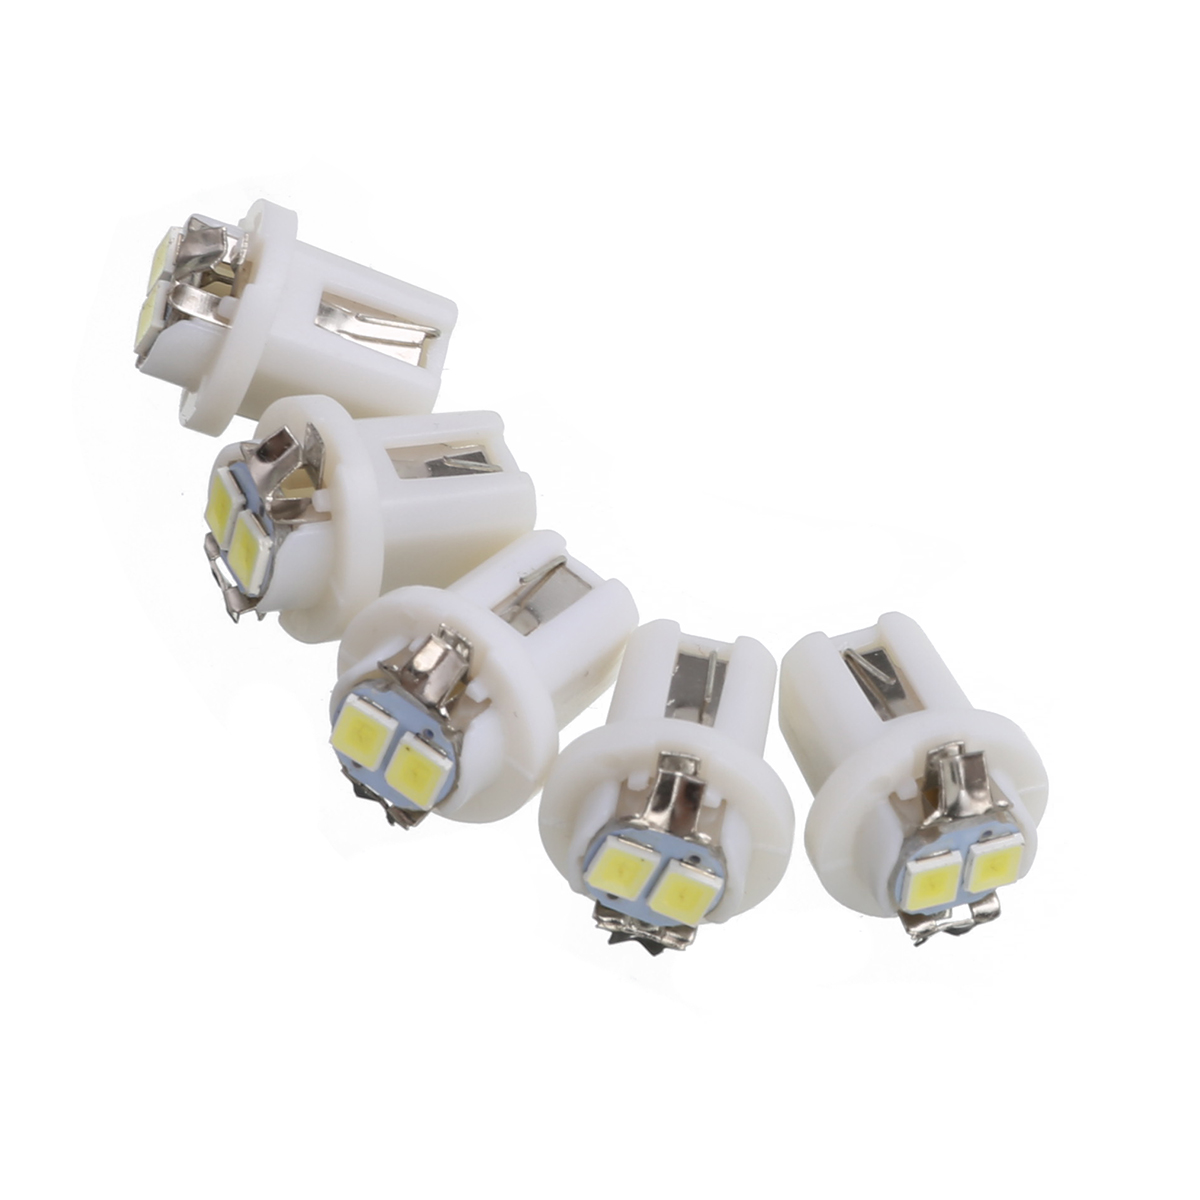 Universal 10pcs 12V 13.8mm White T5 B8.5D 3528 2 LED Car Dash Gauge Instrument Wedge Light Dashboard Tacho and Odometer Bulb